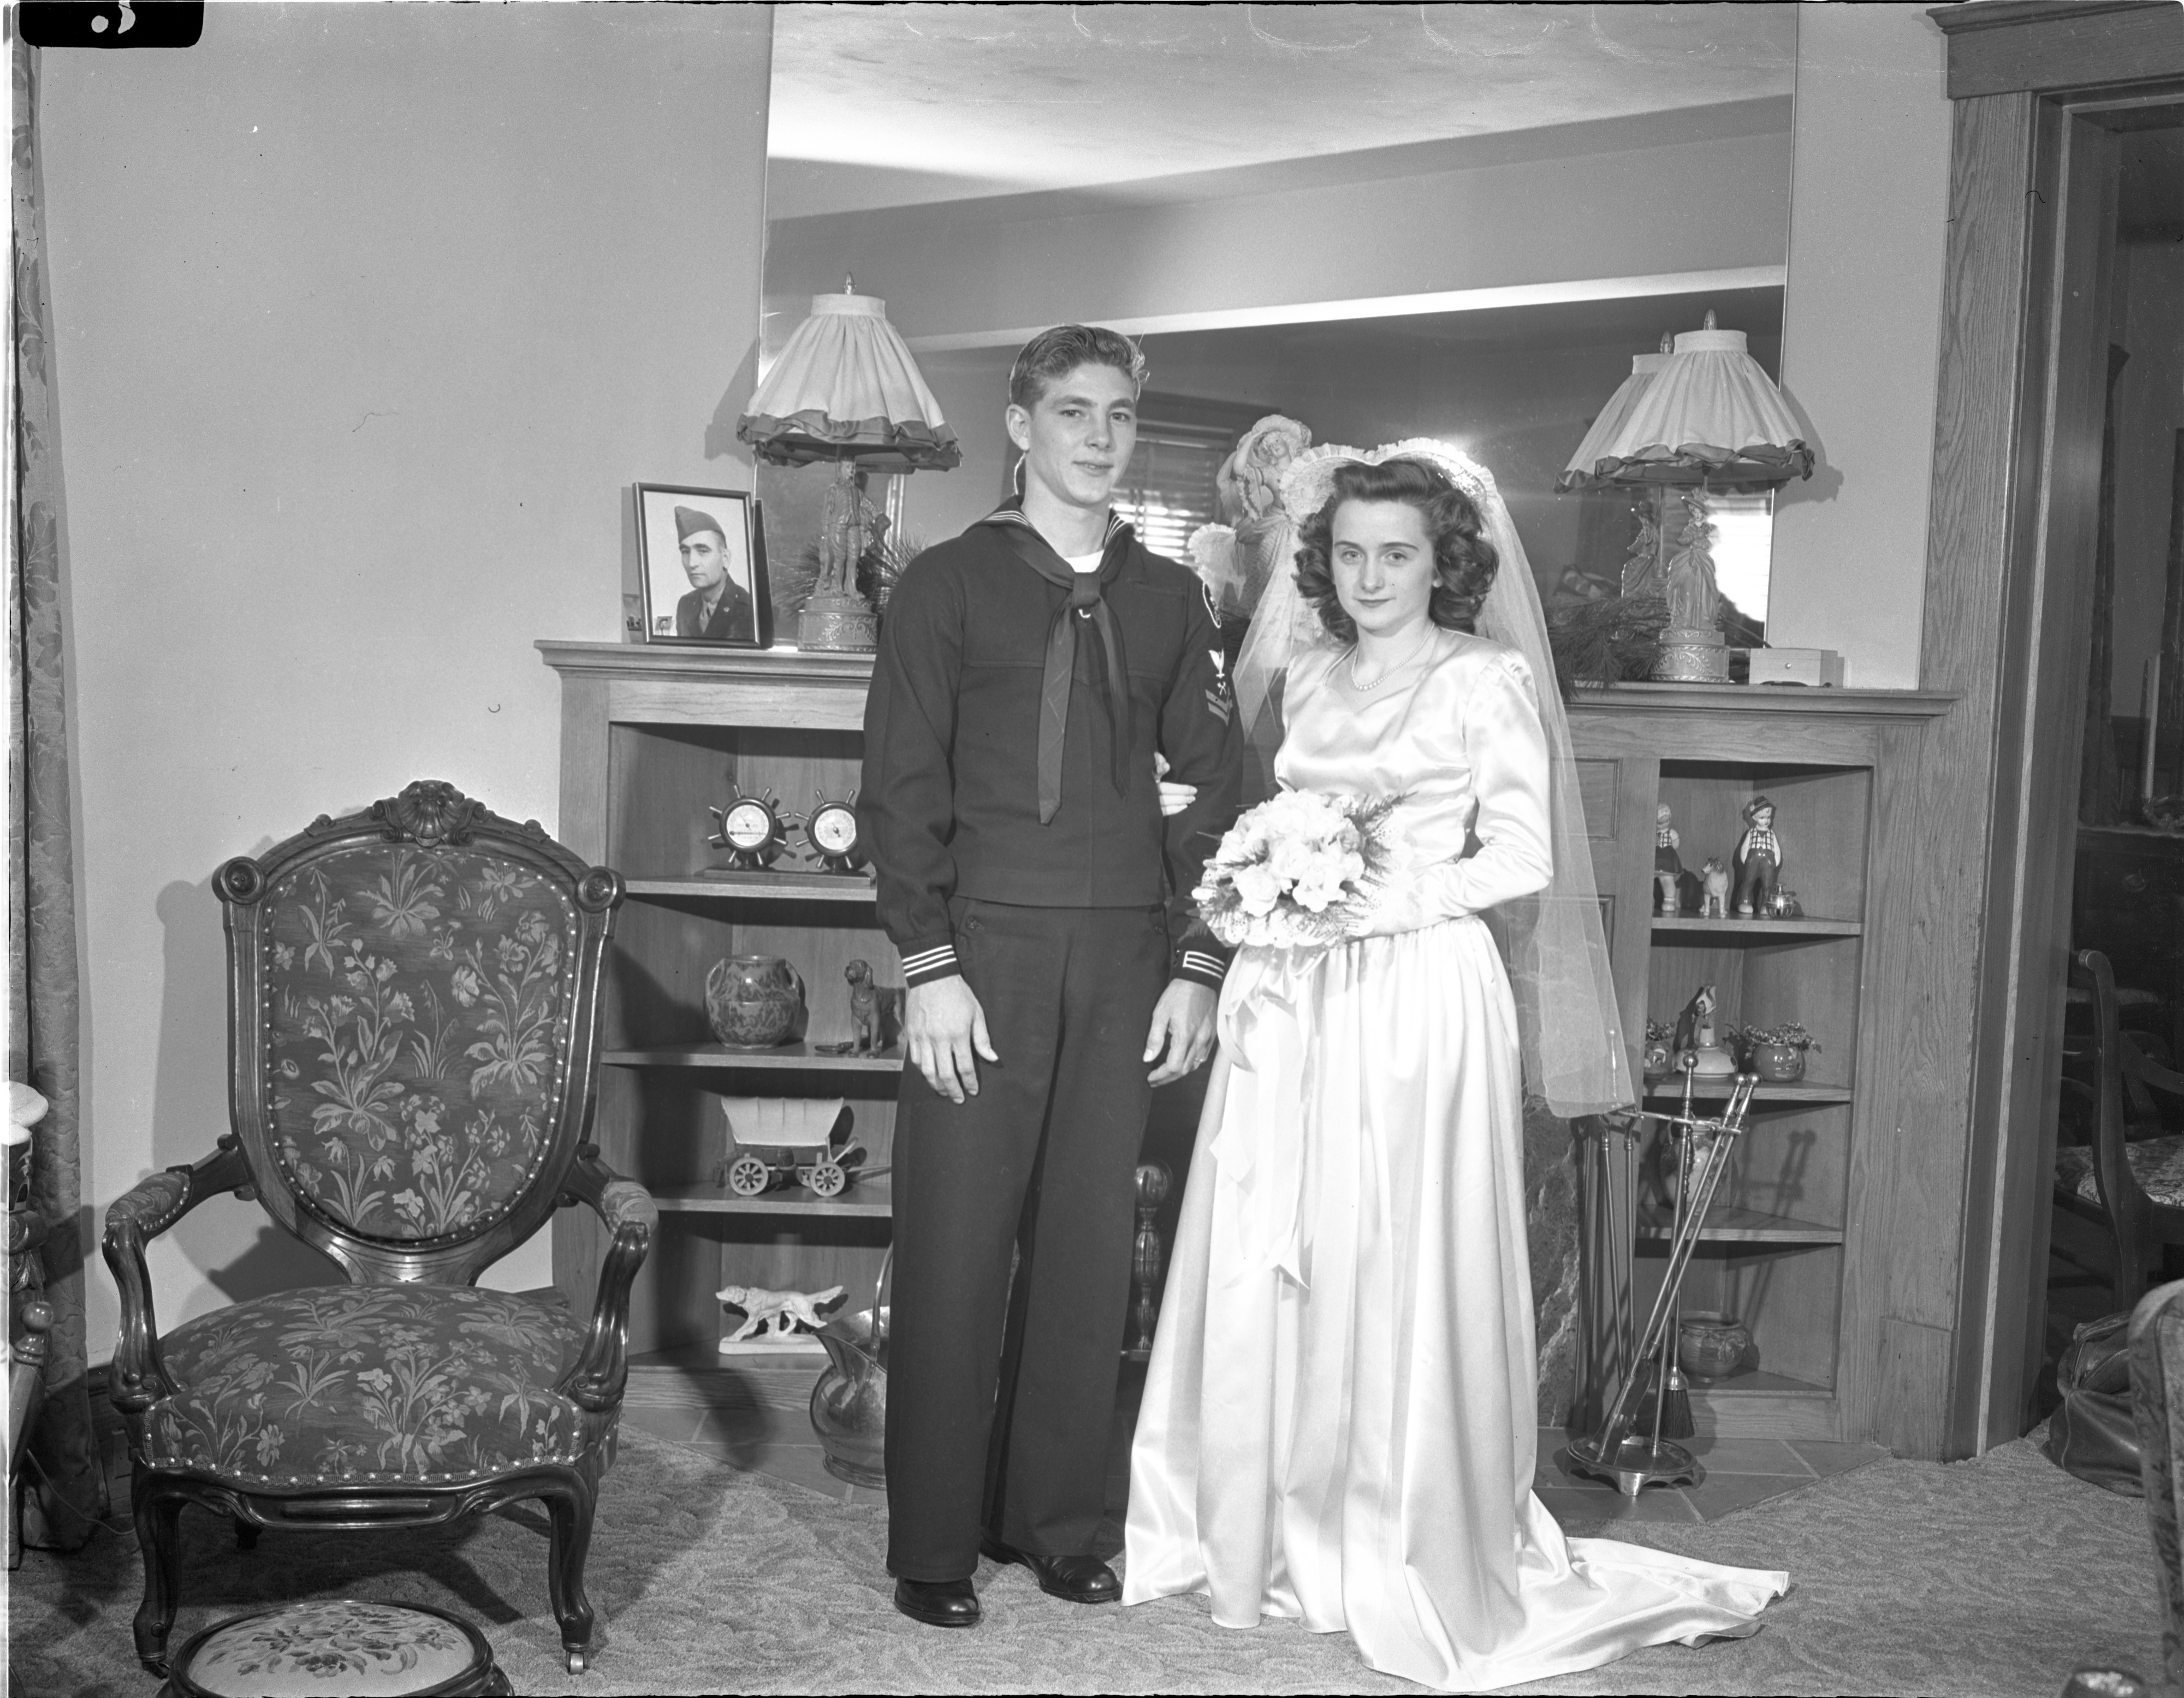 Newly Married Walter & Patricia Bartell - December 15, 1945 image